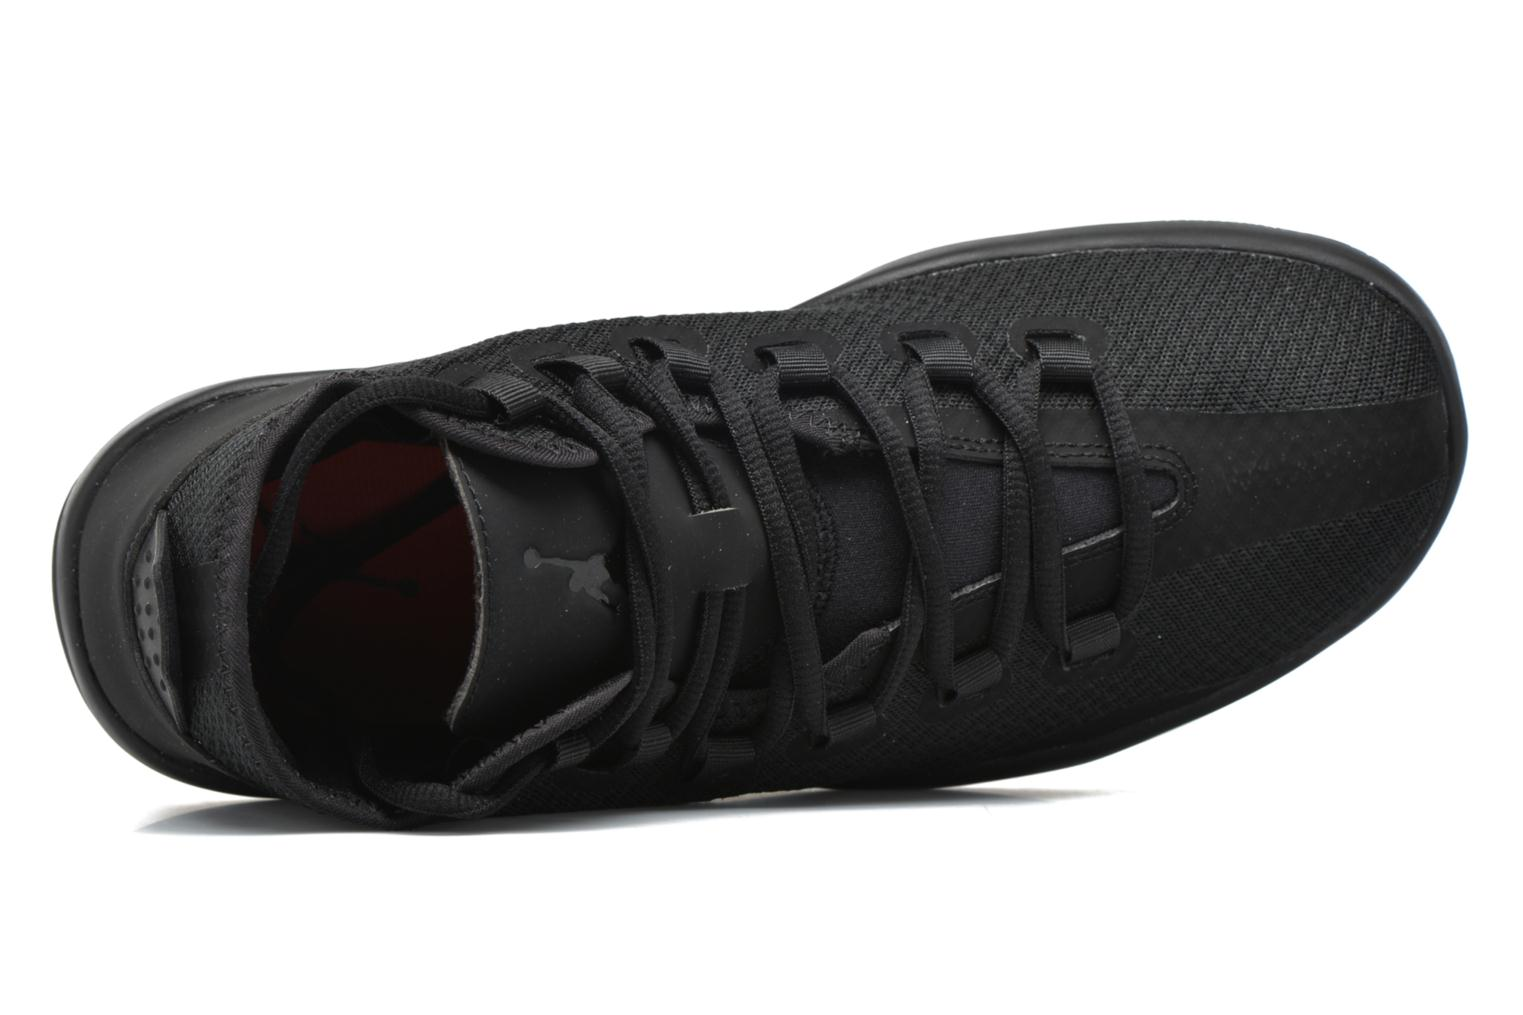 Jordan Reveal Black/Black-Black-Infrared 23